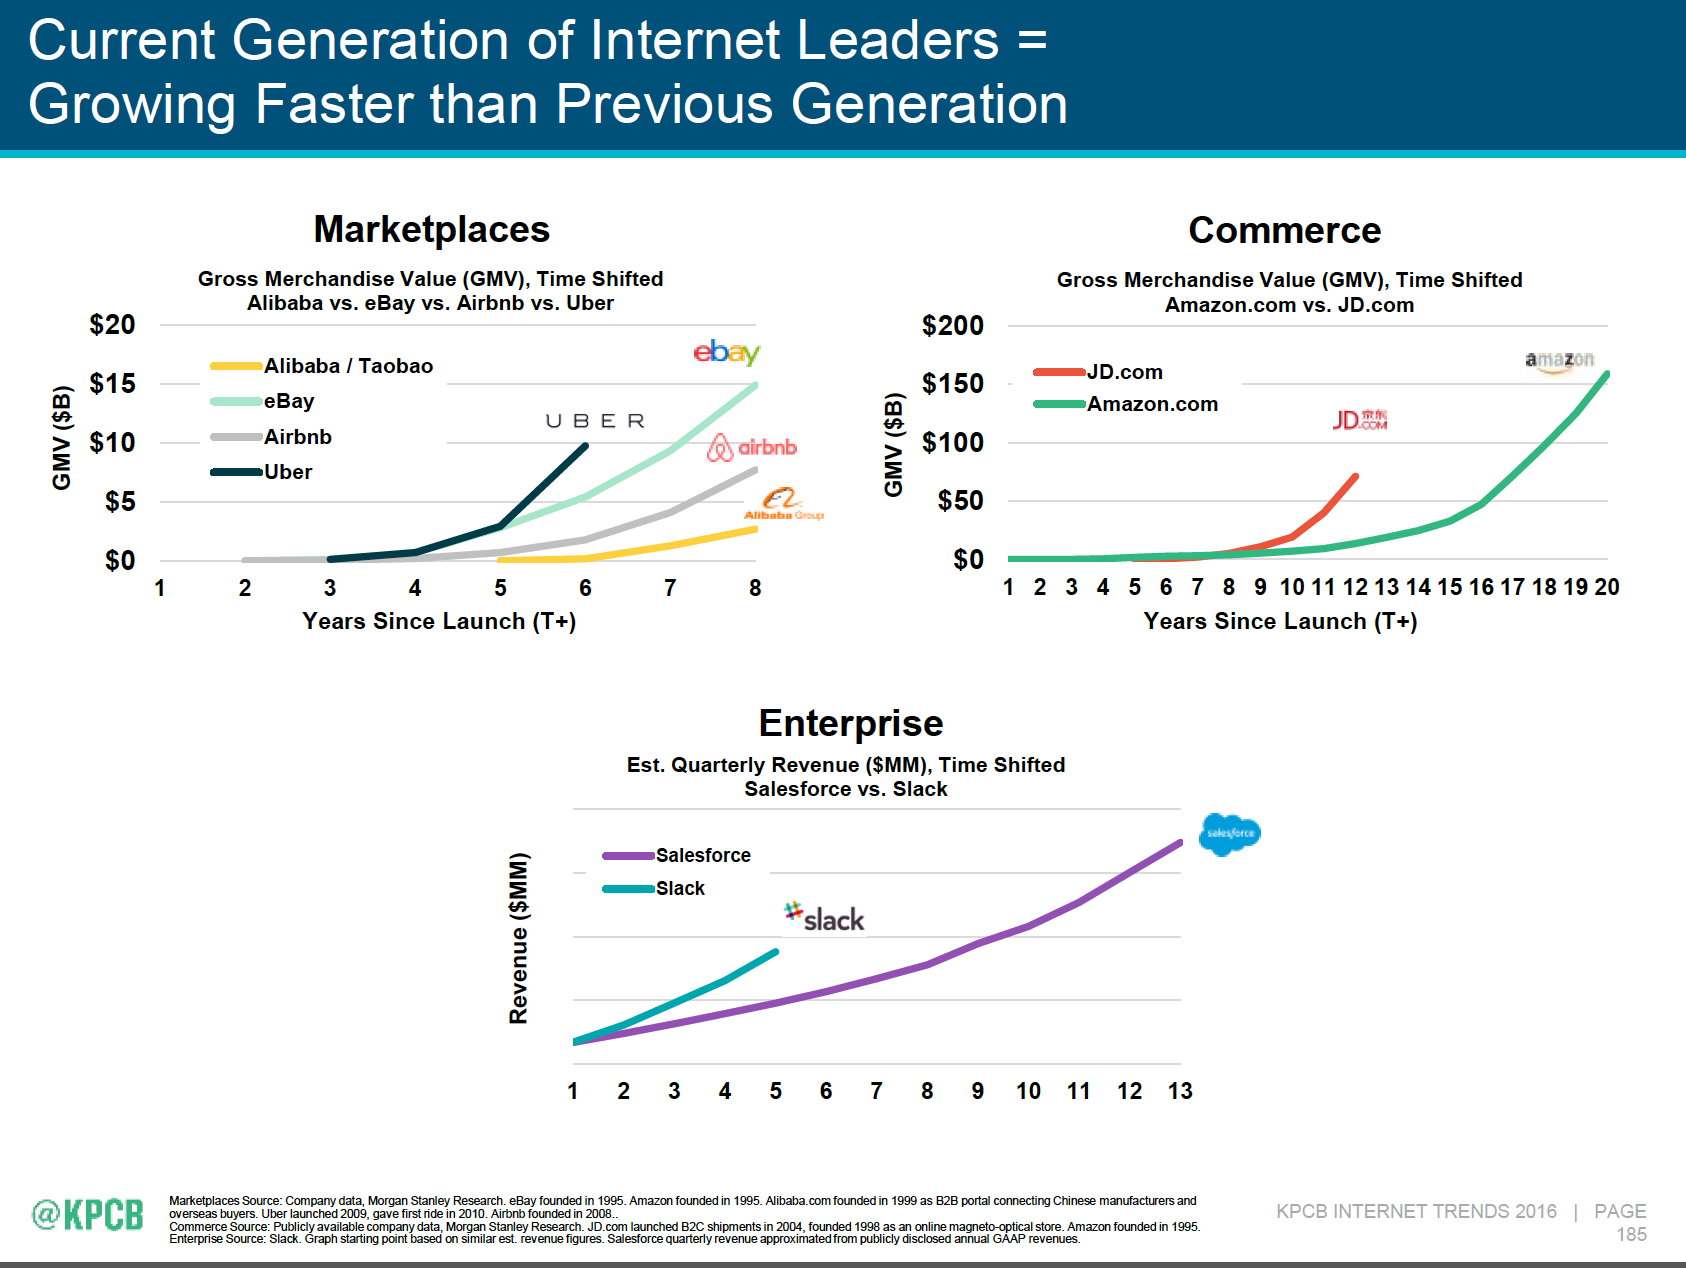 Current generation of internet leaders are growing faster than previous generation - Mary Meeker's 2016 Internet Trends Report